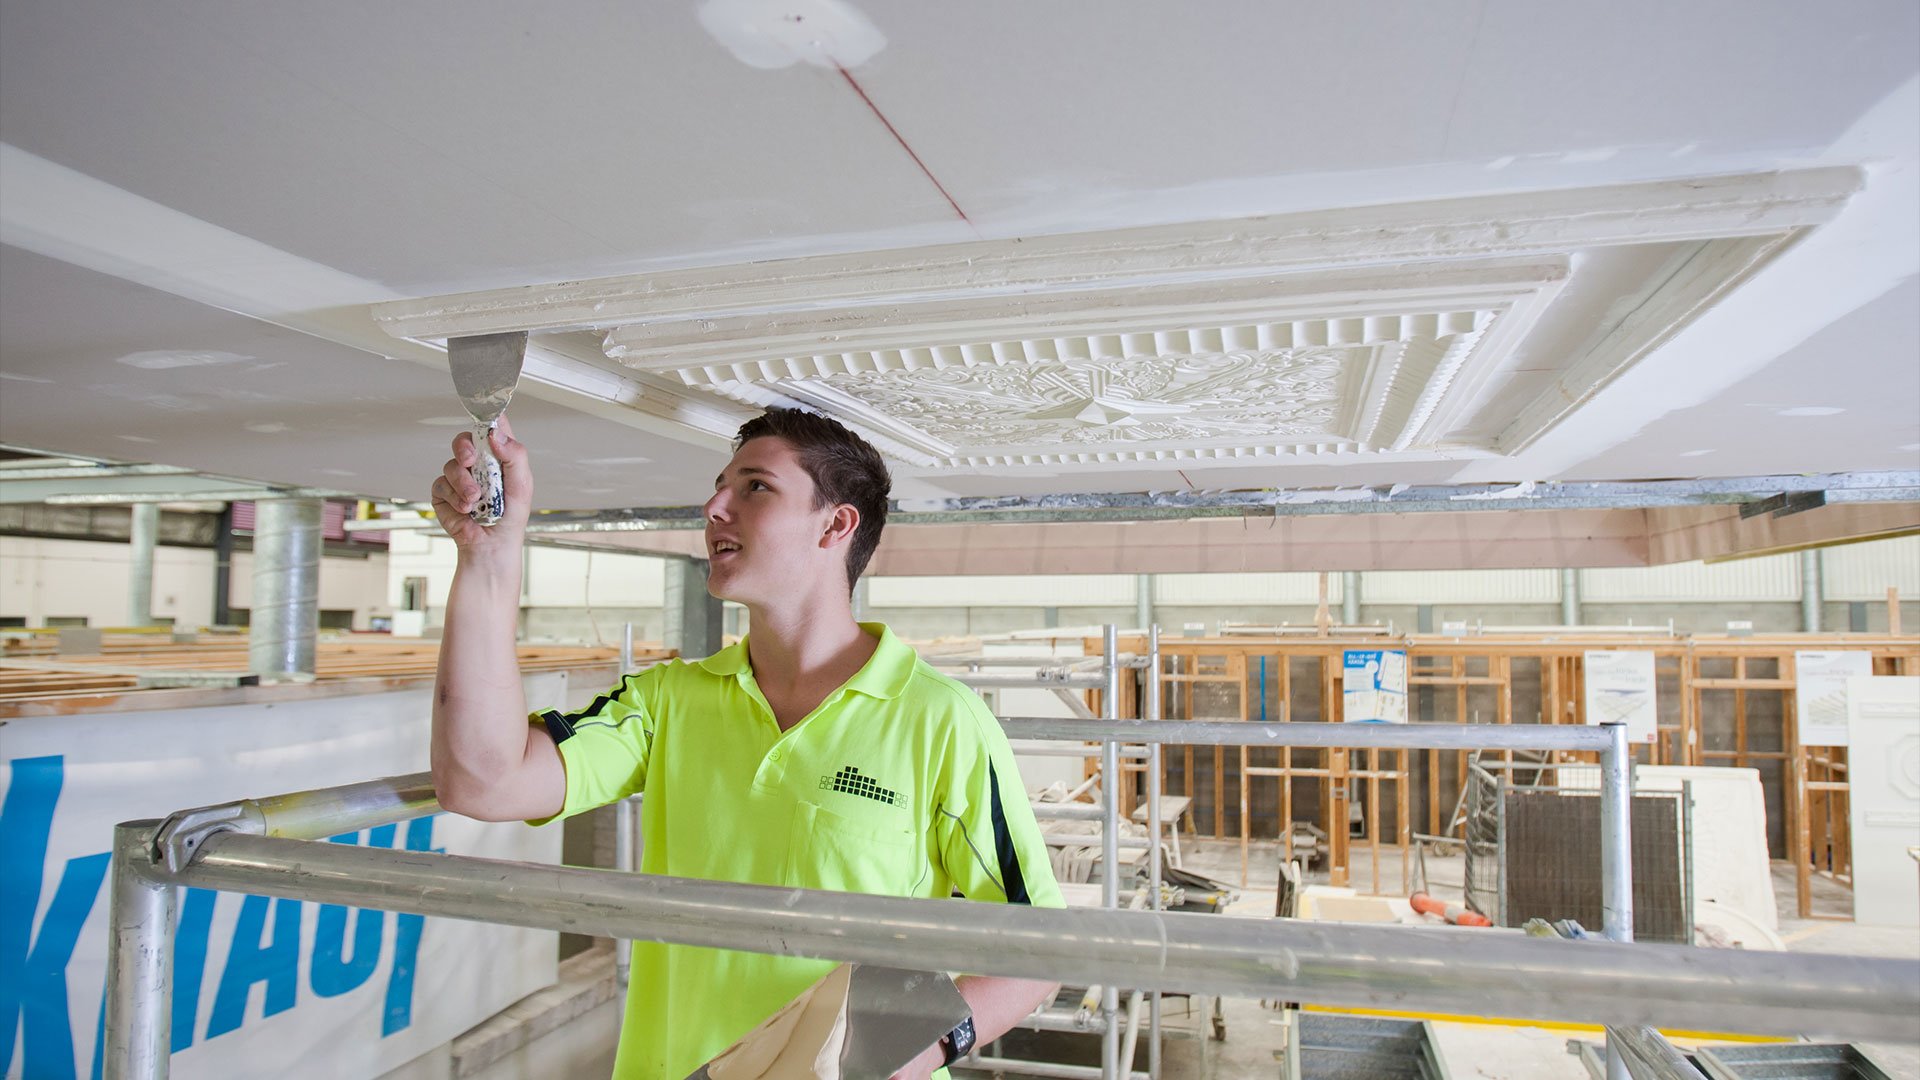 study plastering at tafe queensland